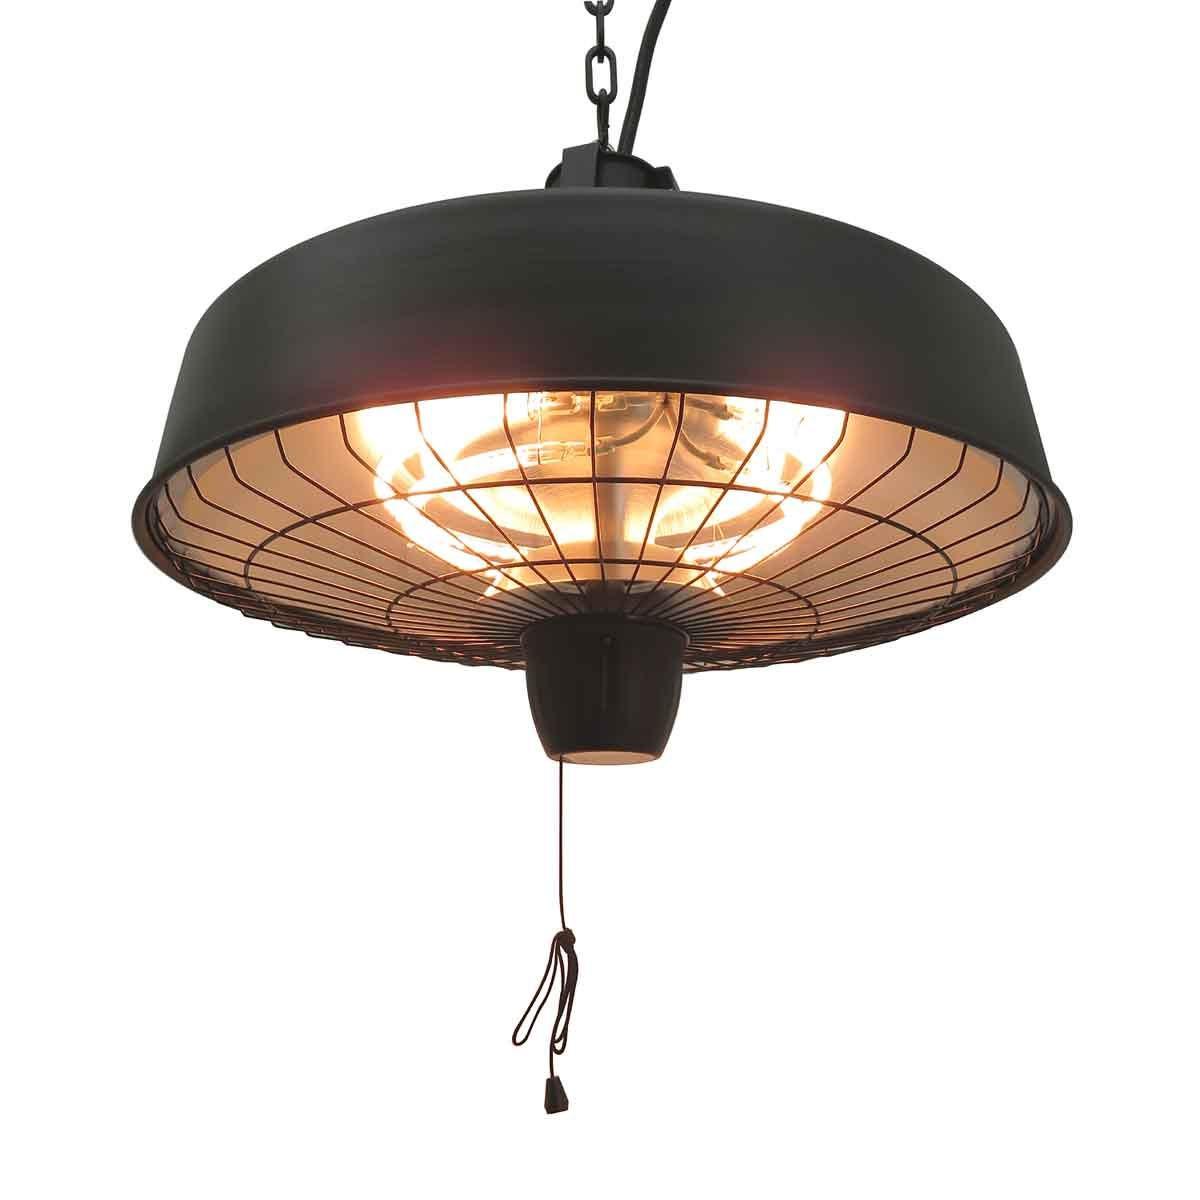 Outsunny Adjustable Infrared Halogen & Ceiling Mounted Light Heater W/ 1000/2500W Power - Black